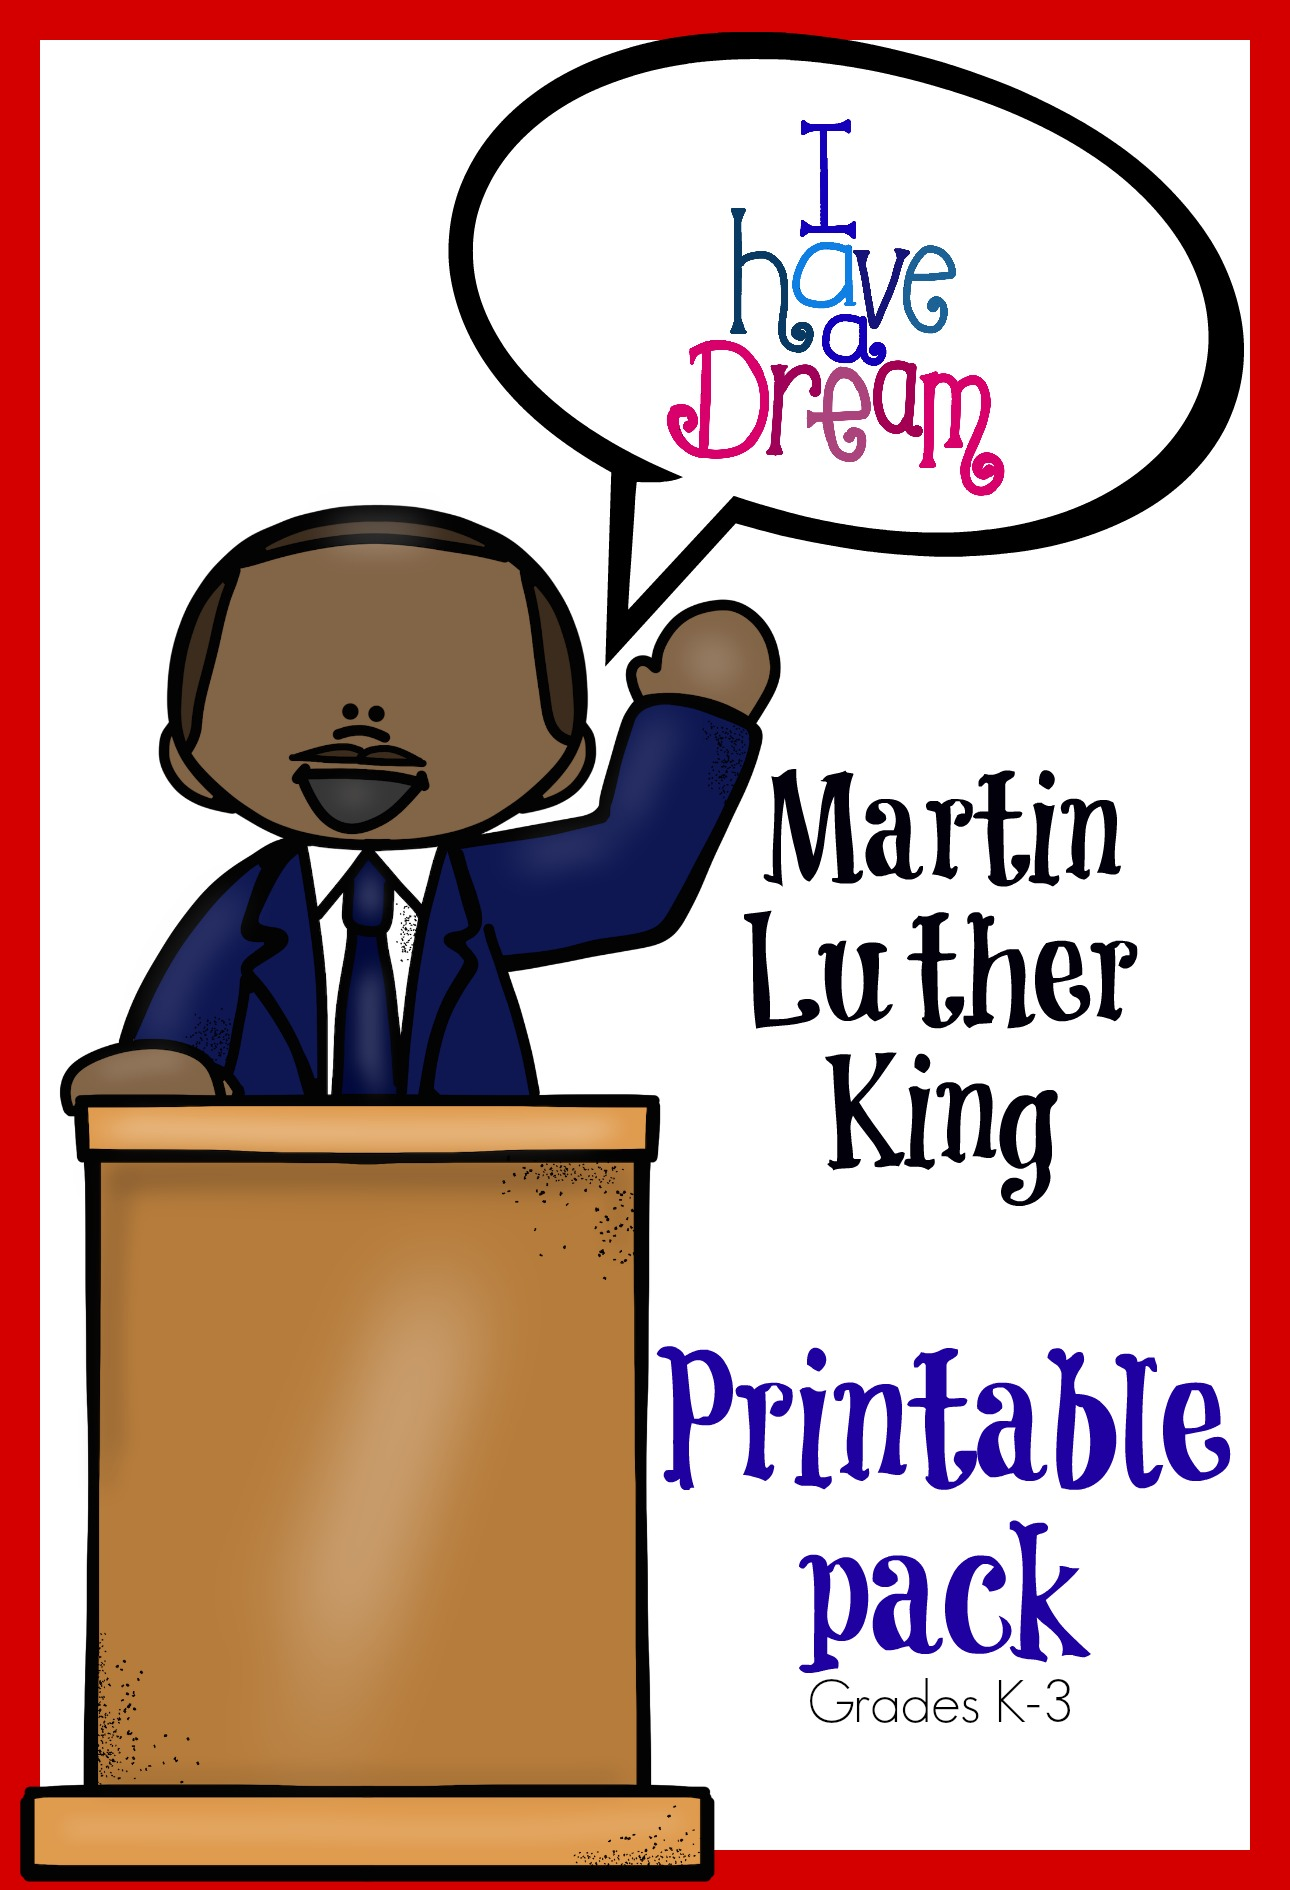 Home Elementary Circle Time Martin Luther King Jr. Memory Pack